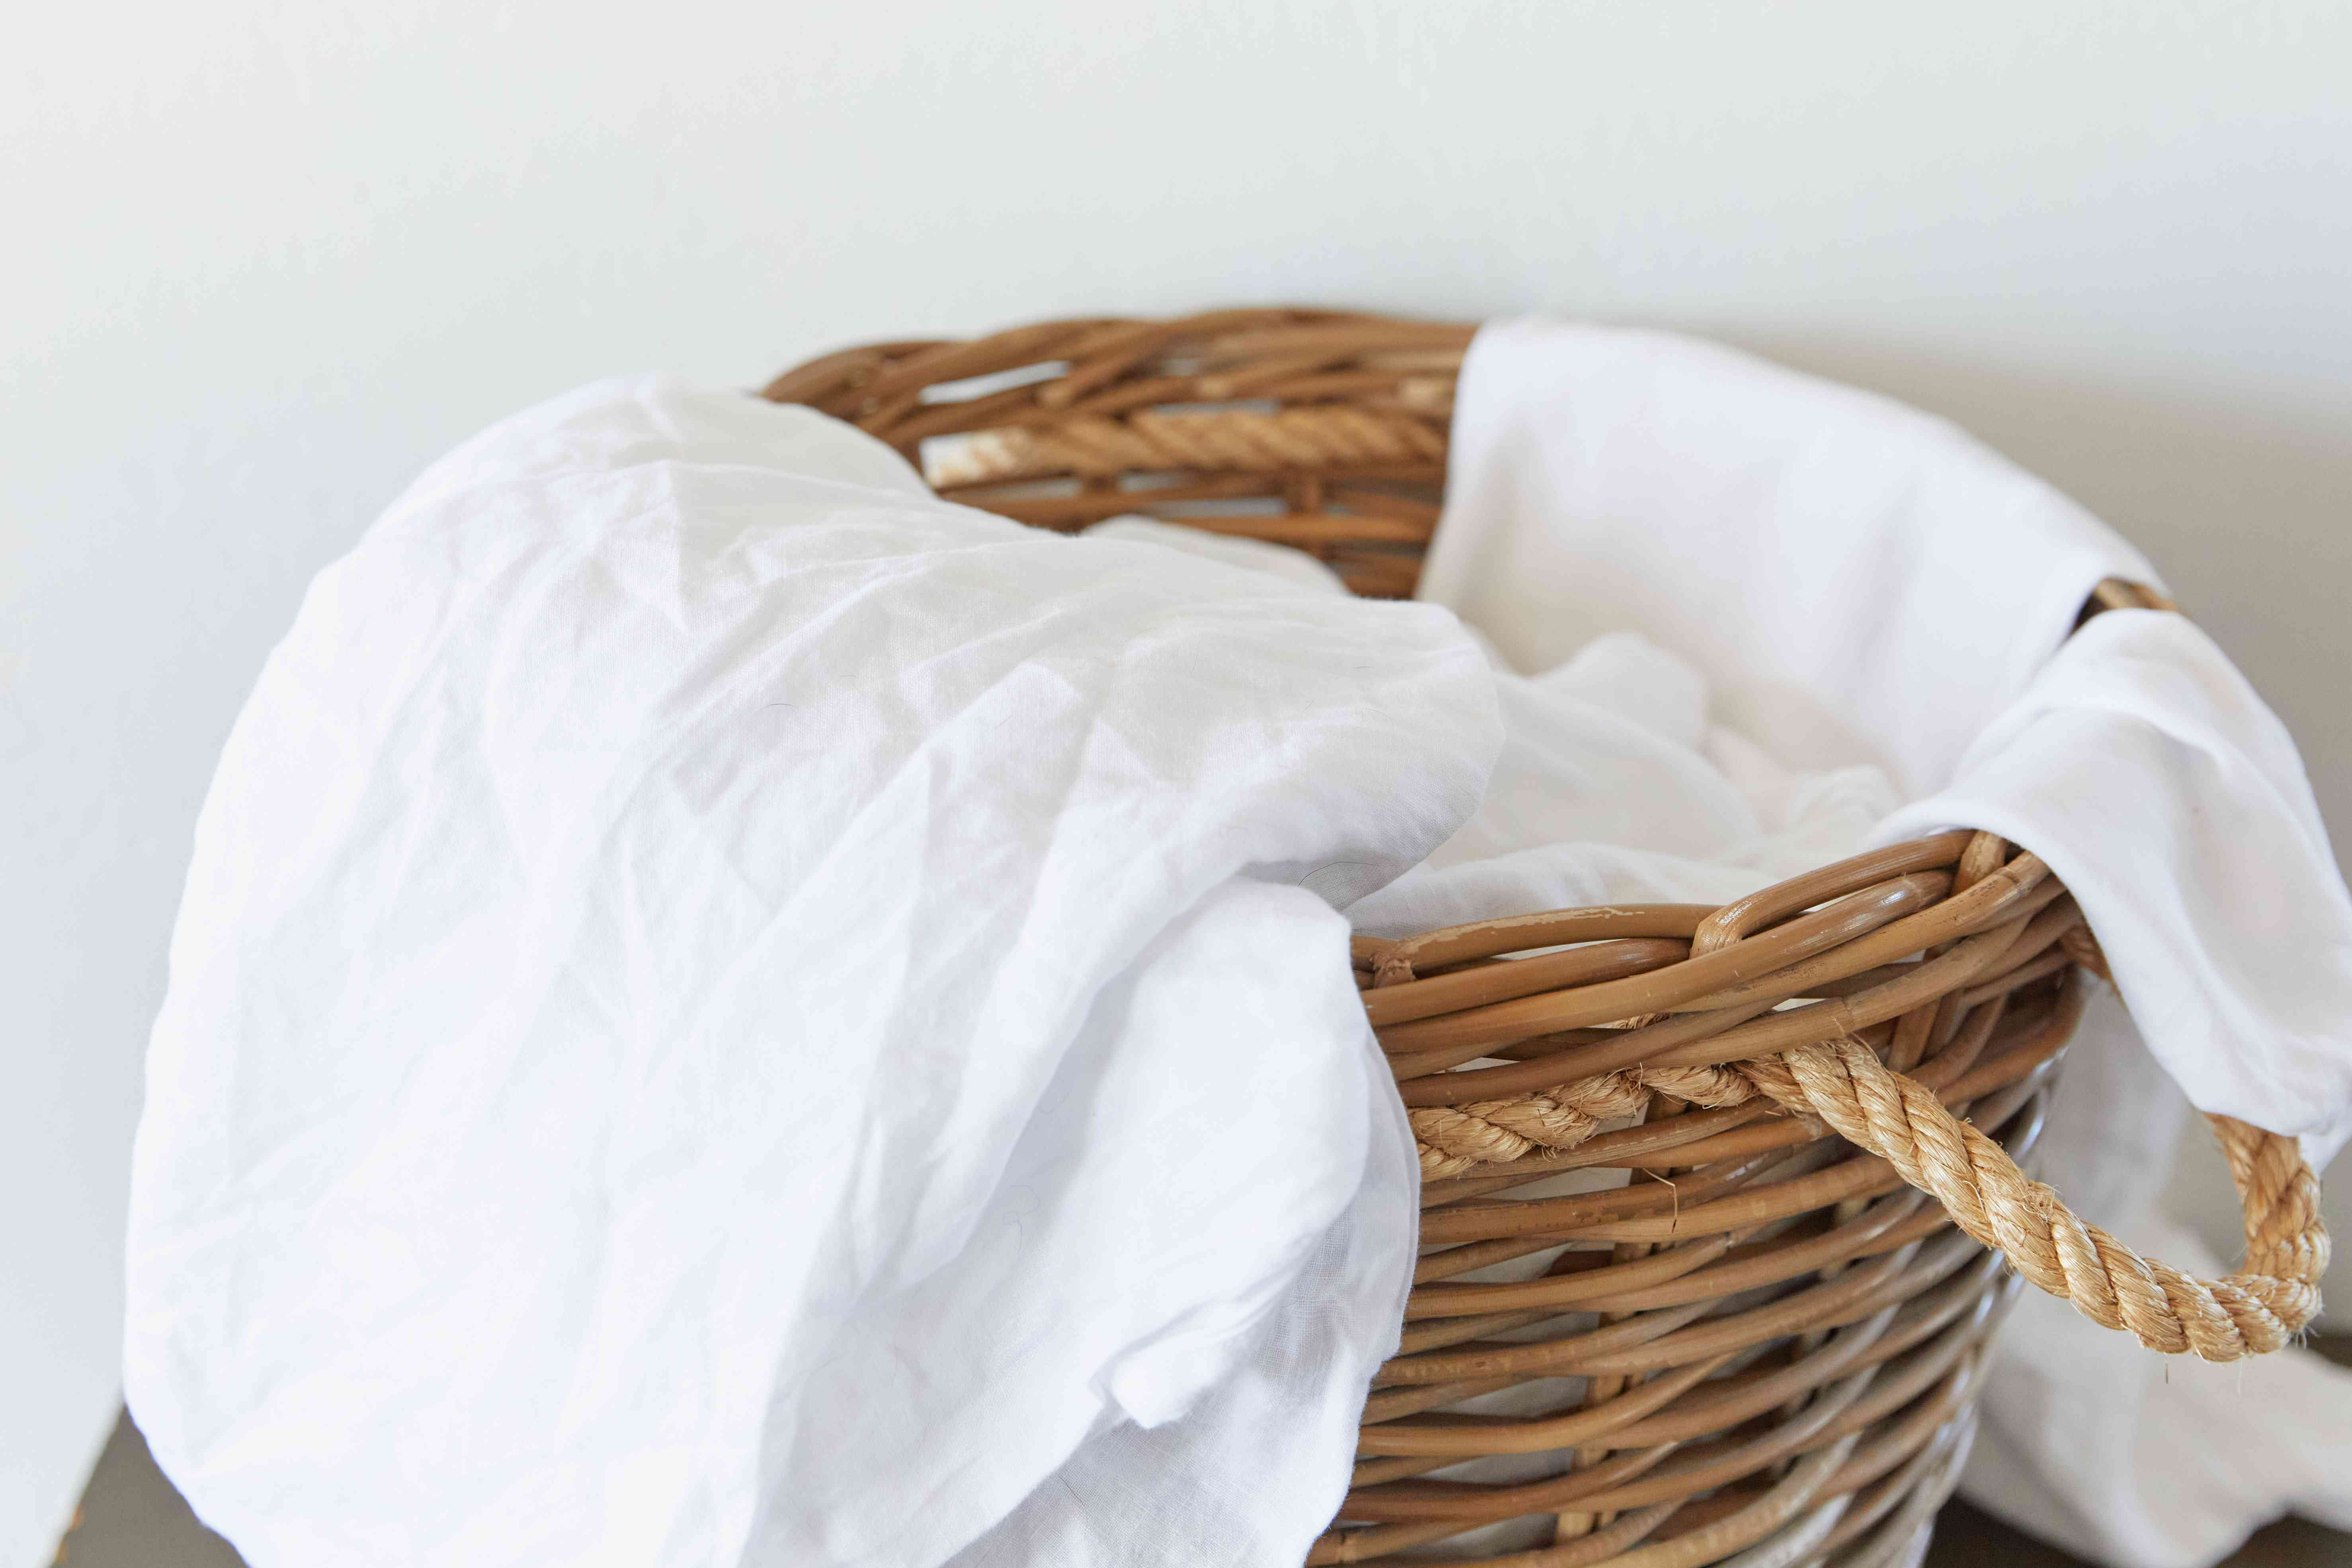 used linens in a laundry basket